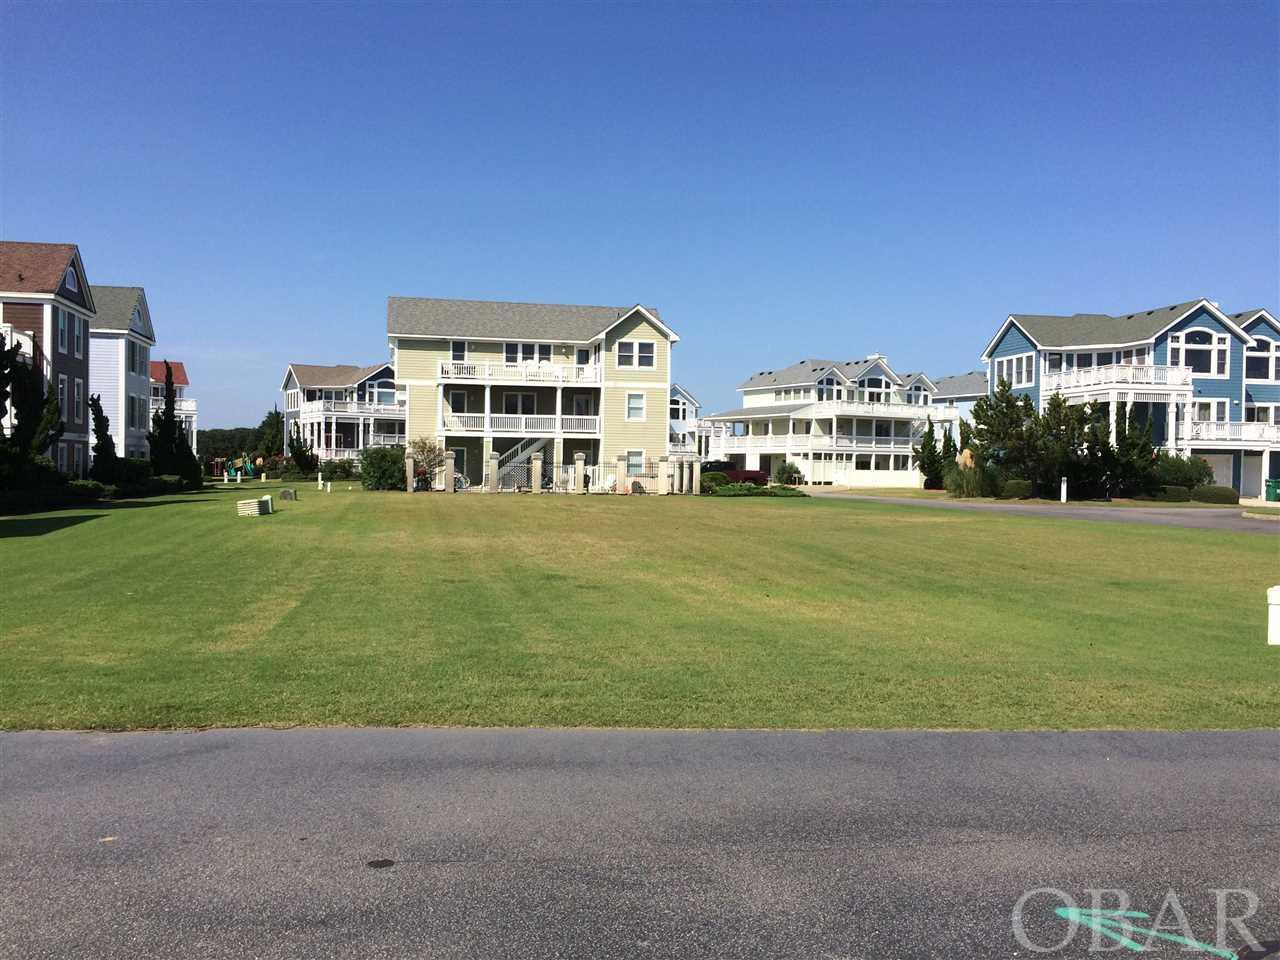 782 Broad Street,Corolla,NC 27927,Lots/land,Broad Street,98056